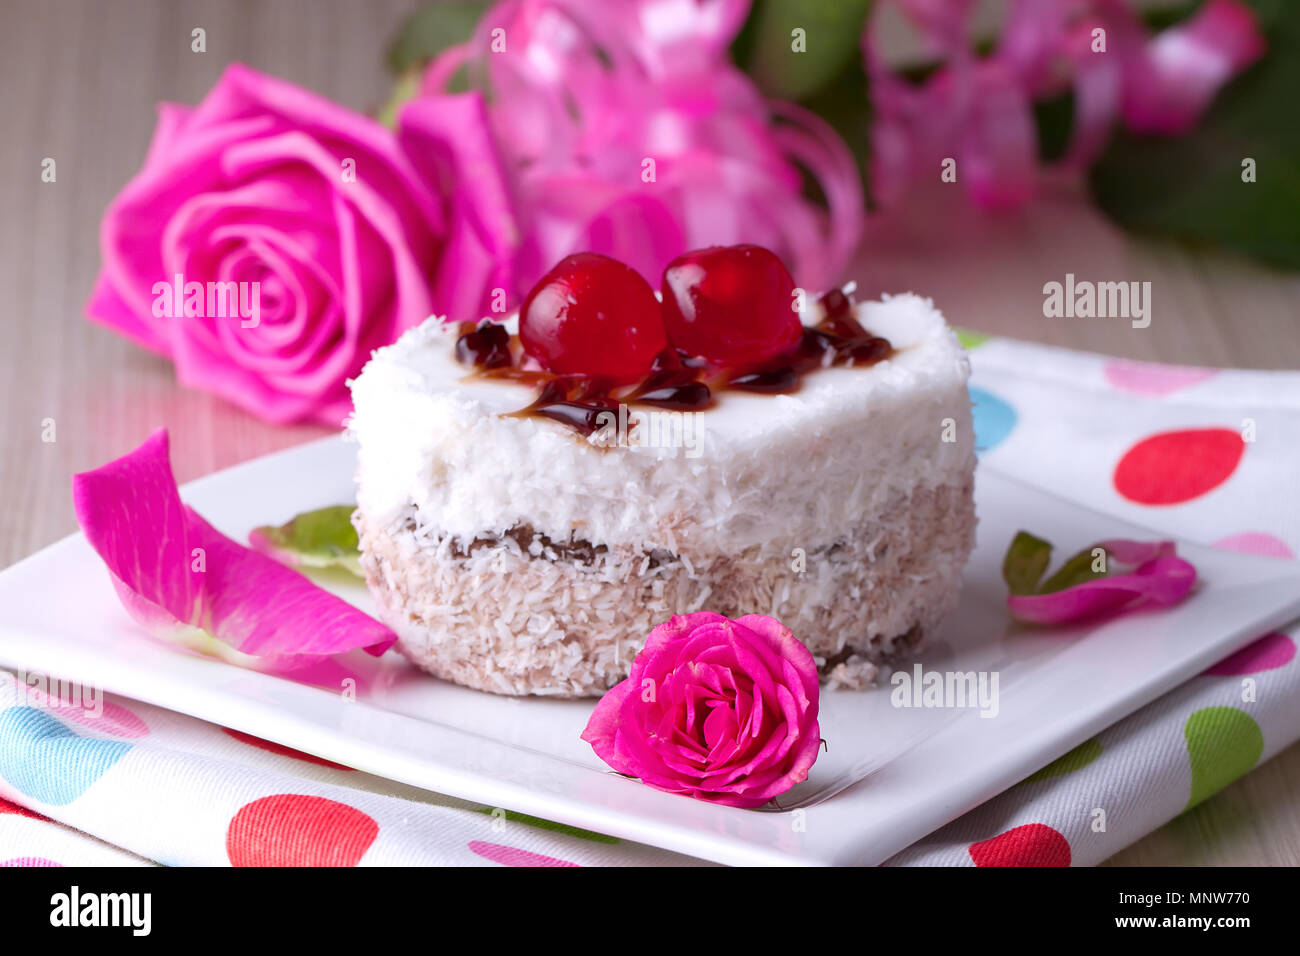 Wedding Cake Decoration Red White Stock Photos & Wedding Cake ...